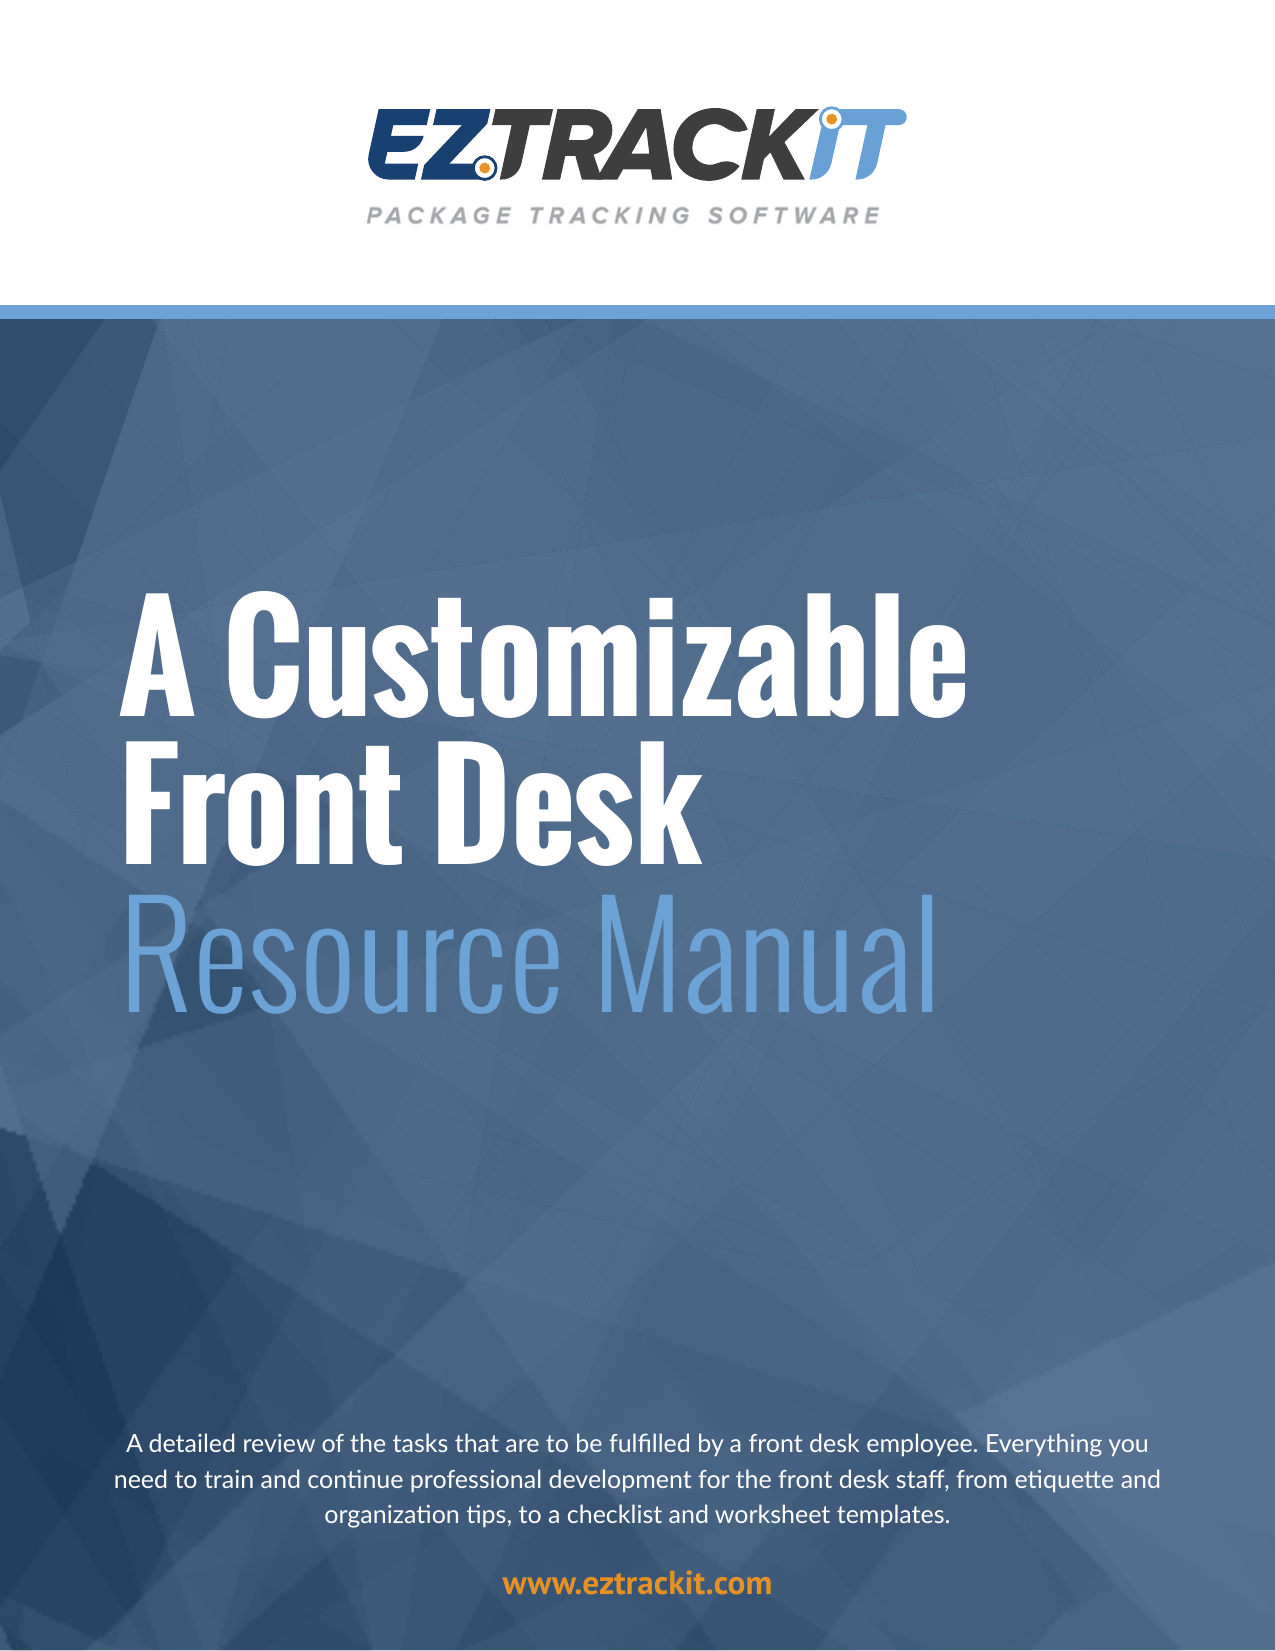 A Customizable Front Desk Resource Manual